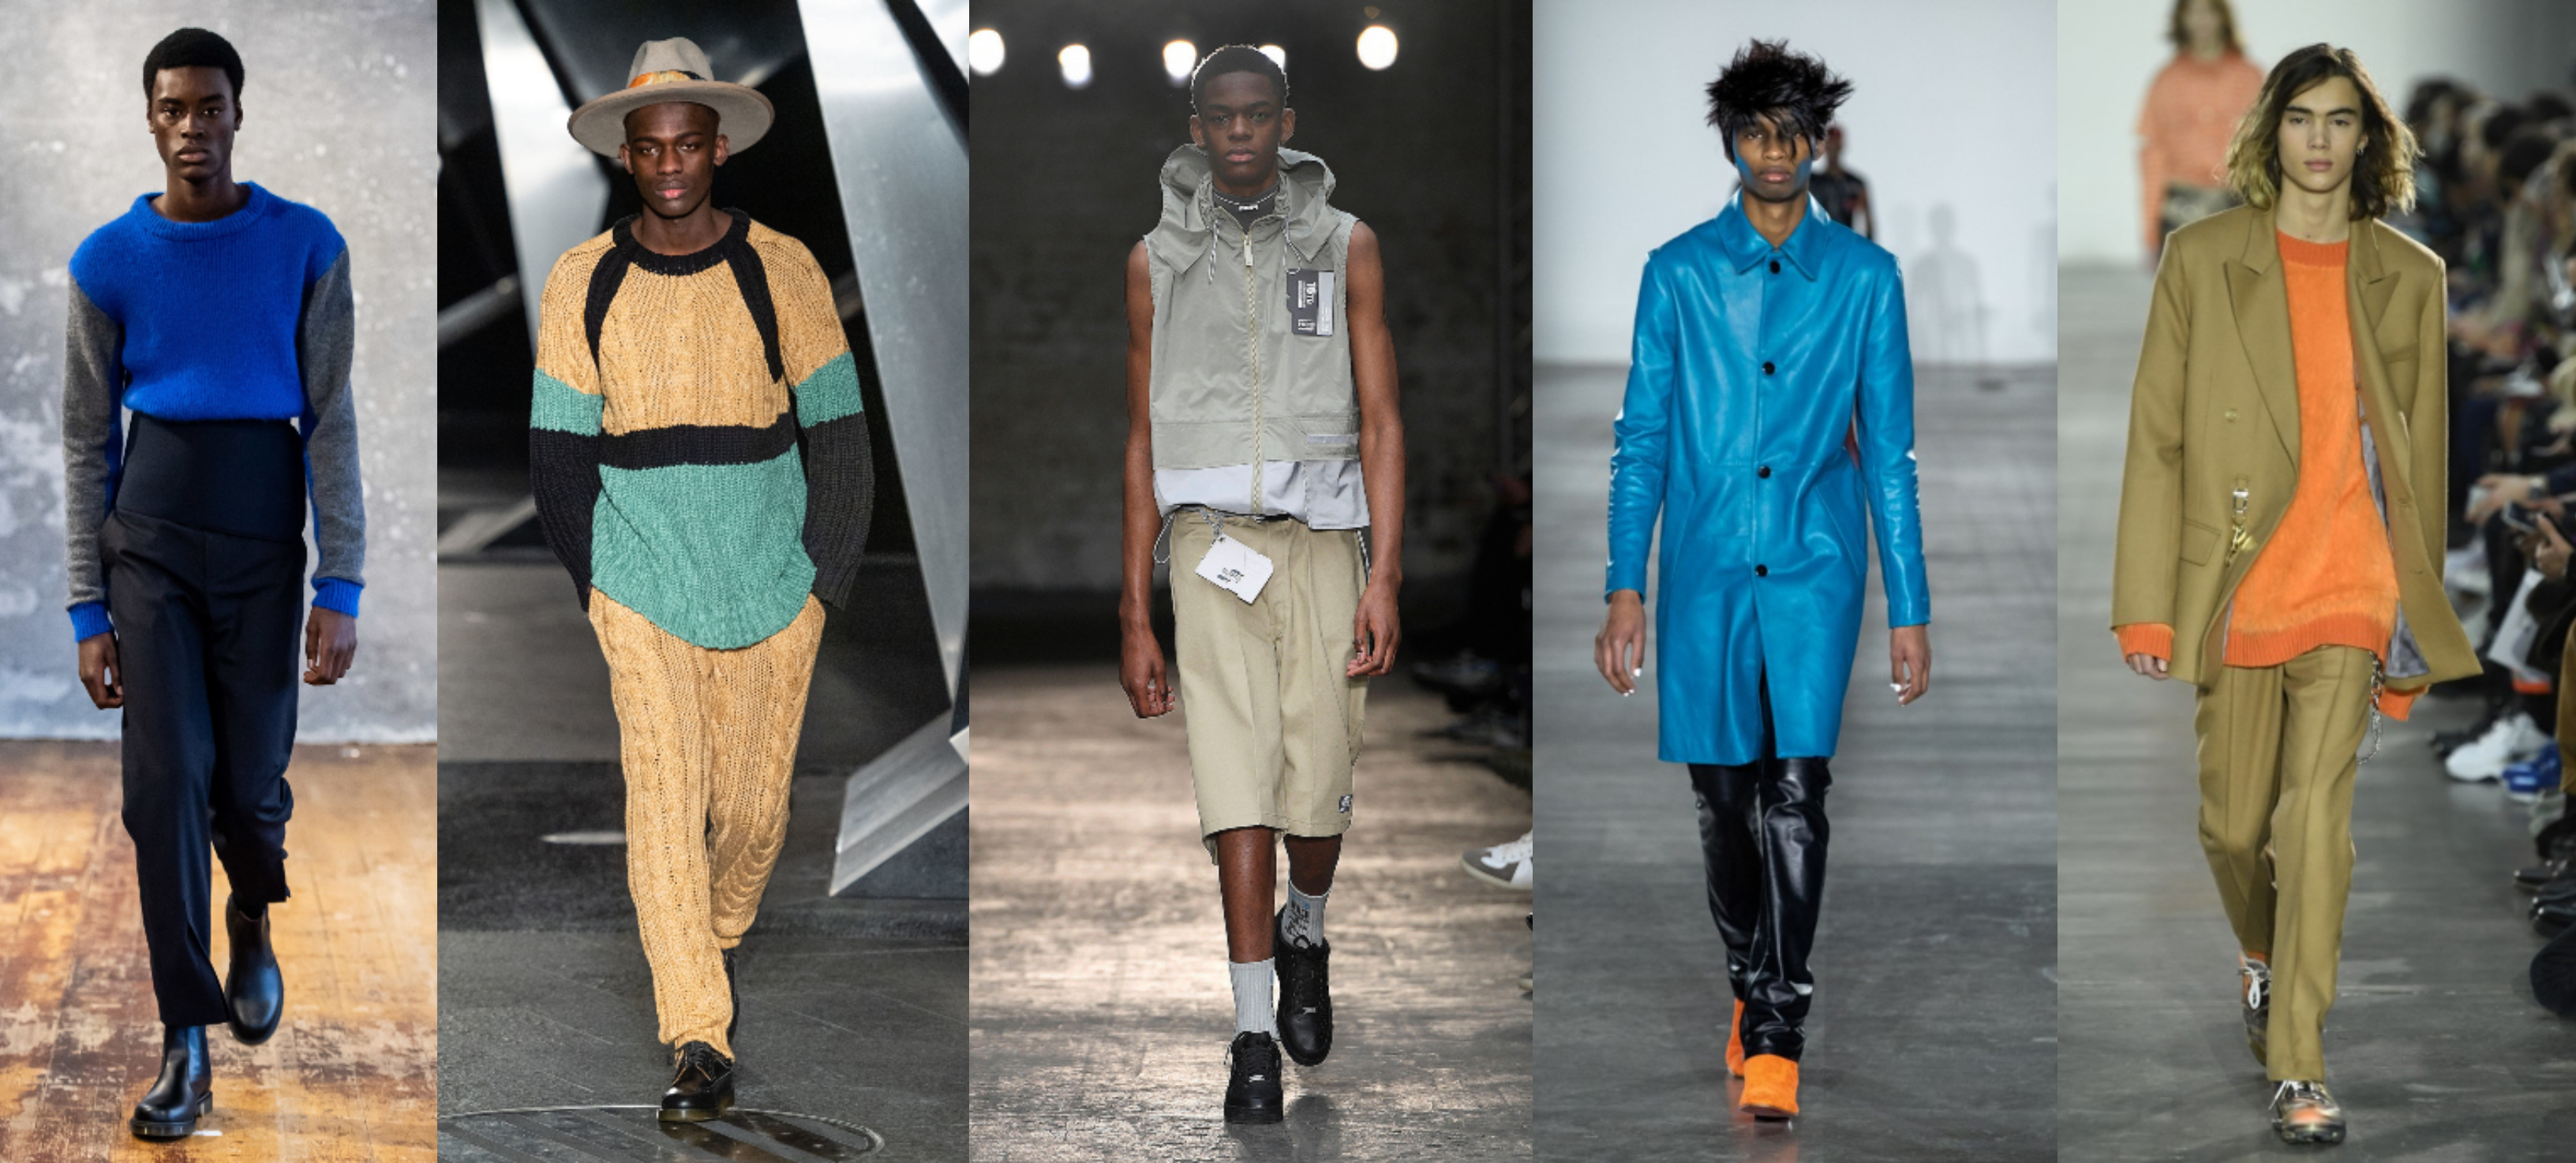 LFWM Roundup: 5 Collections That Caught our Attention